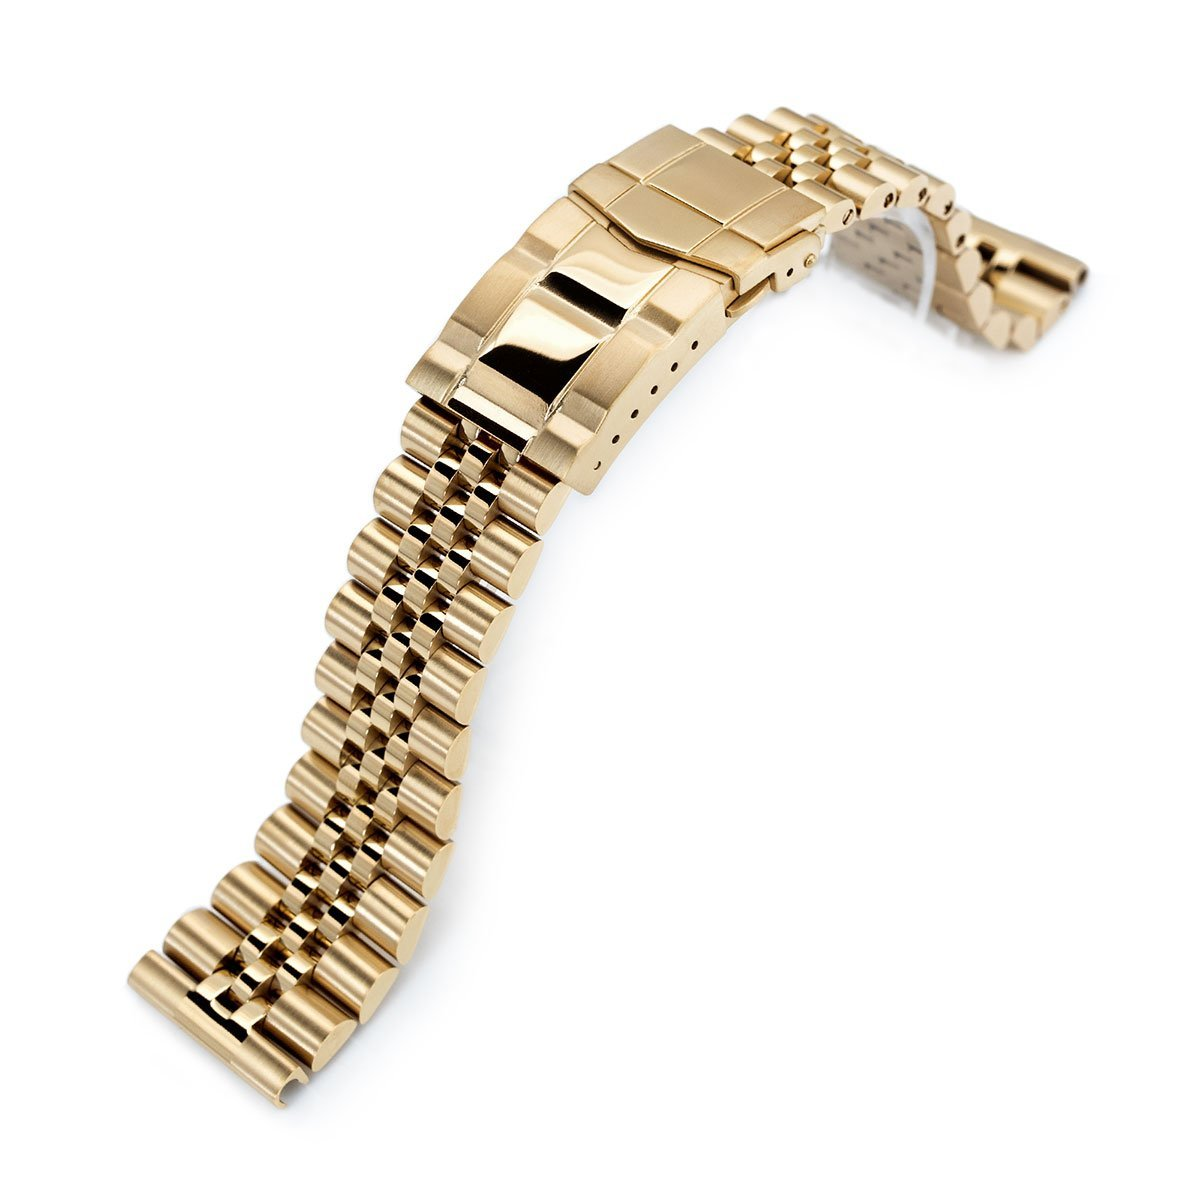 22mm Super-J Louis 316L Stainless Steel Watch Band Solid Straight End SUB Diver Clasp full IP Gold Strapcode Watch Bands